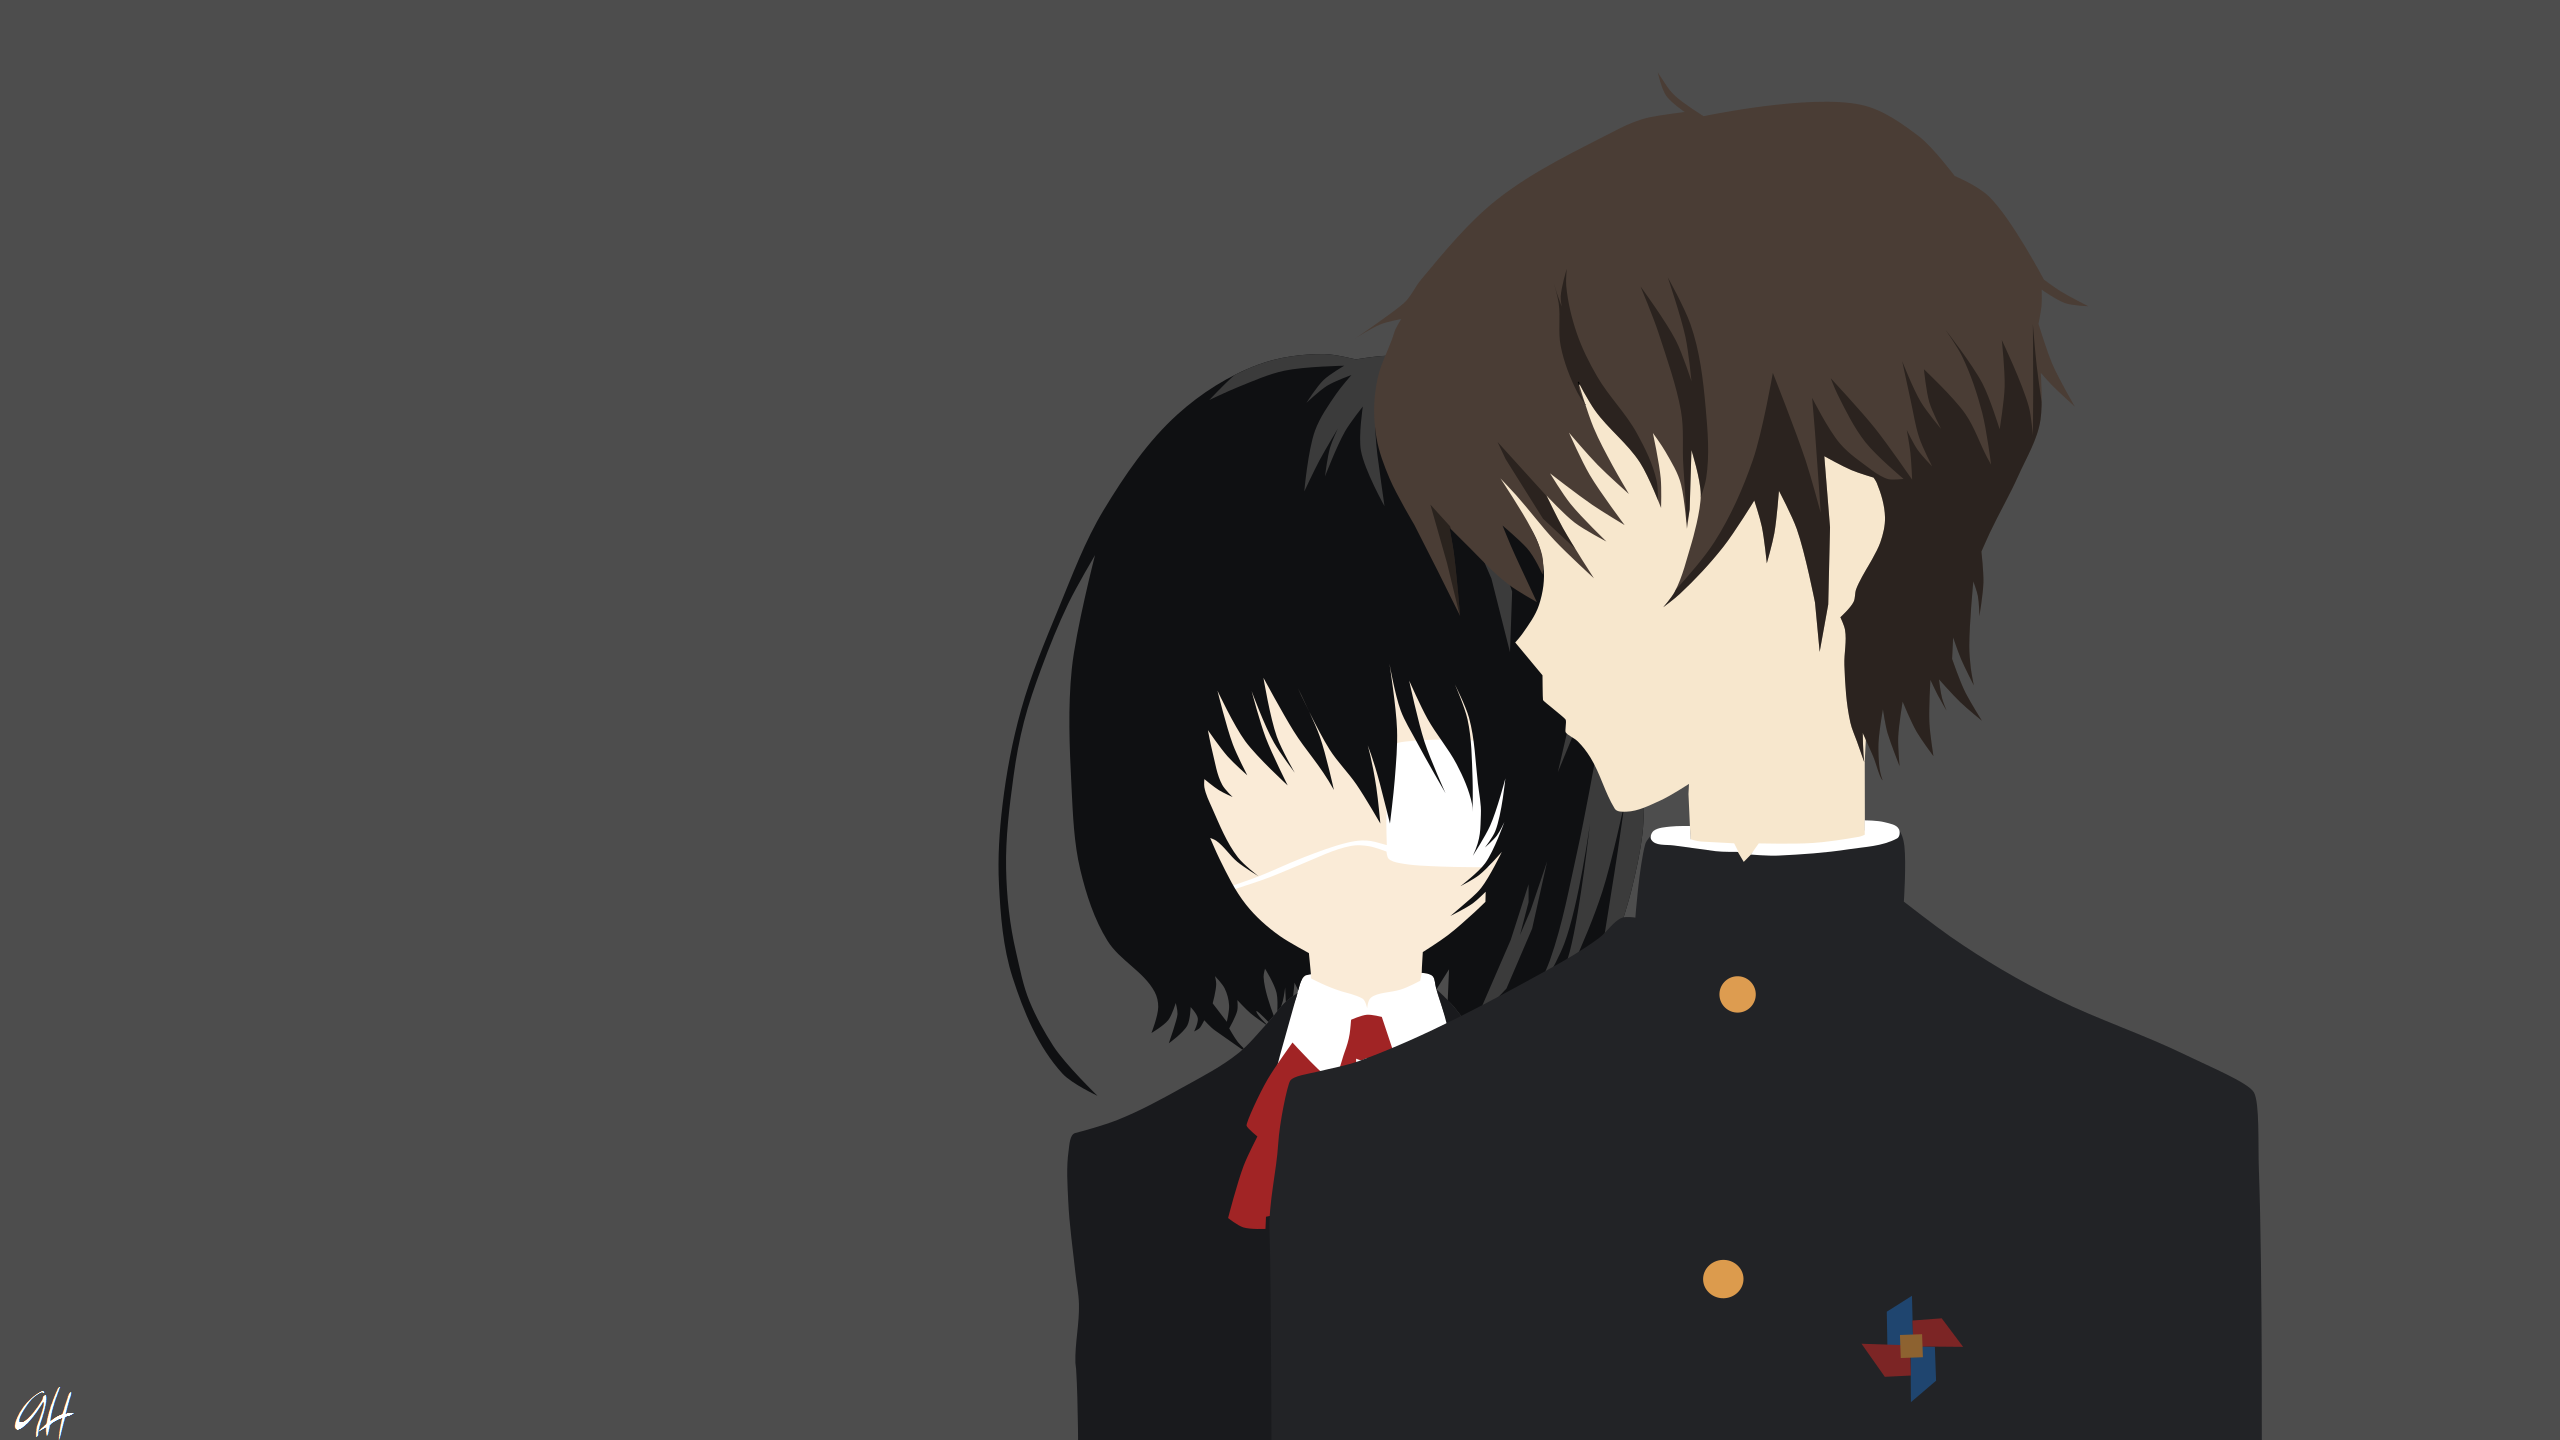 Misaki Mei and Kouichi Sakakibara Another Full HD Wallpaper and ...